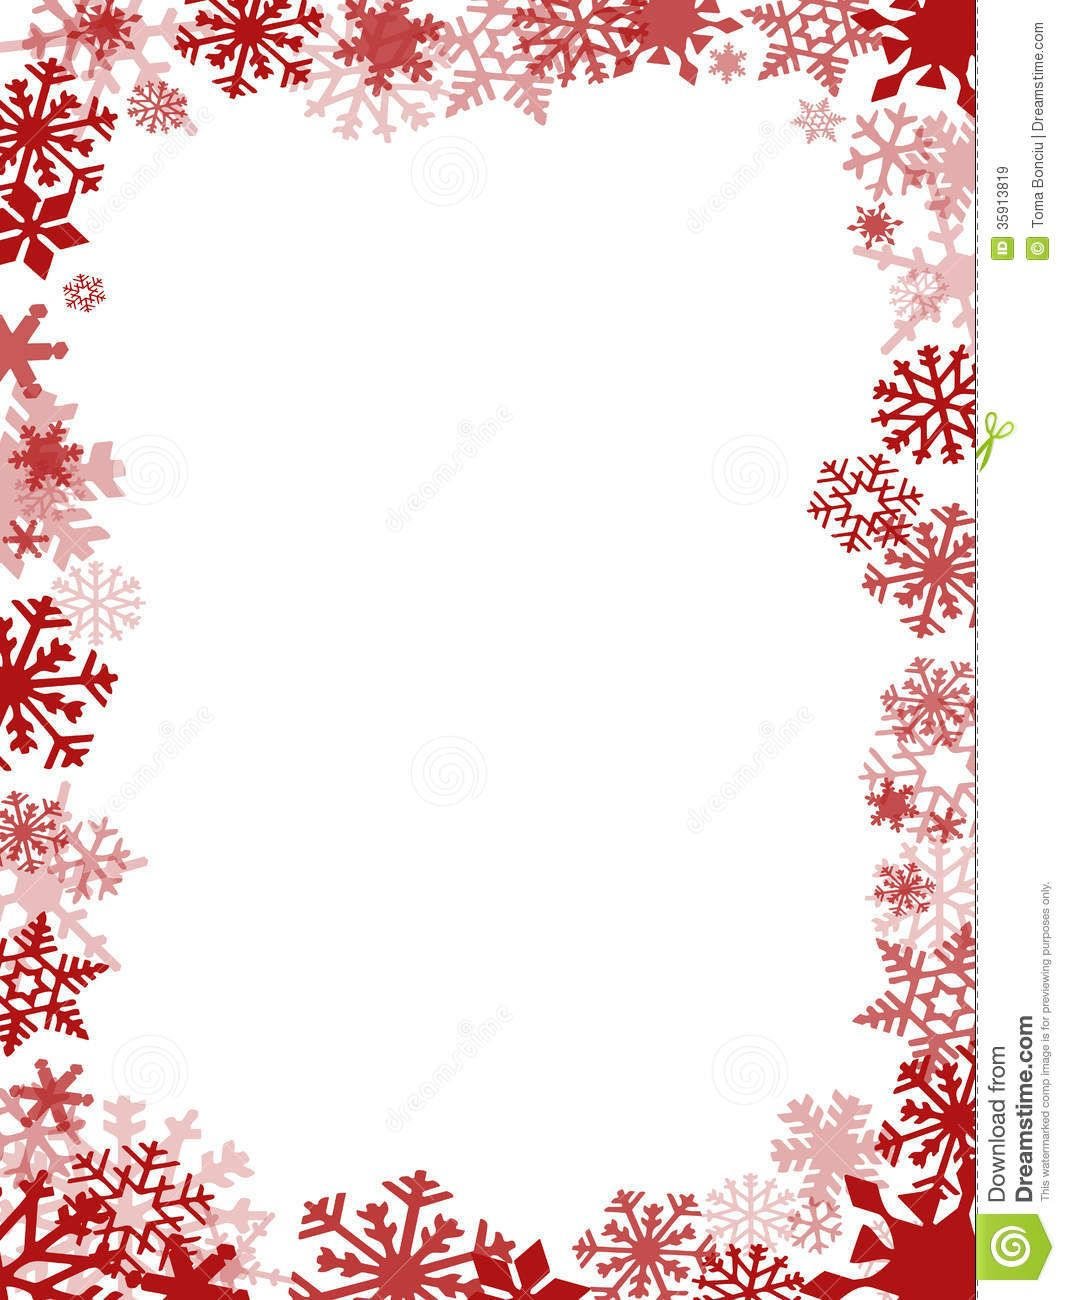 Holiday Border Templates - Bing images | Christmas Craft Ideas ...